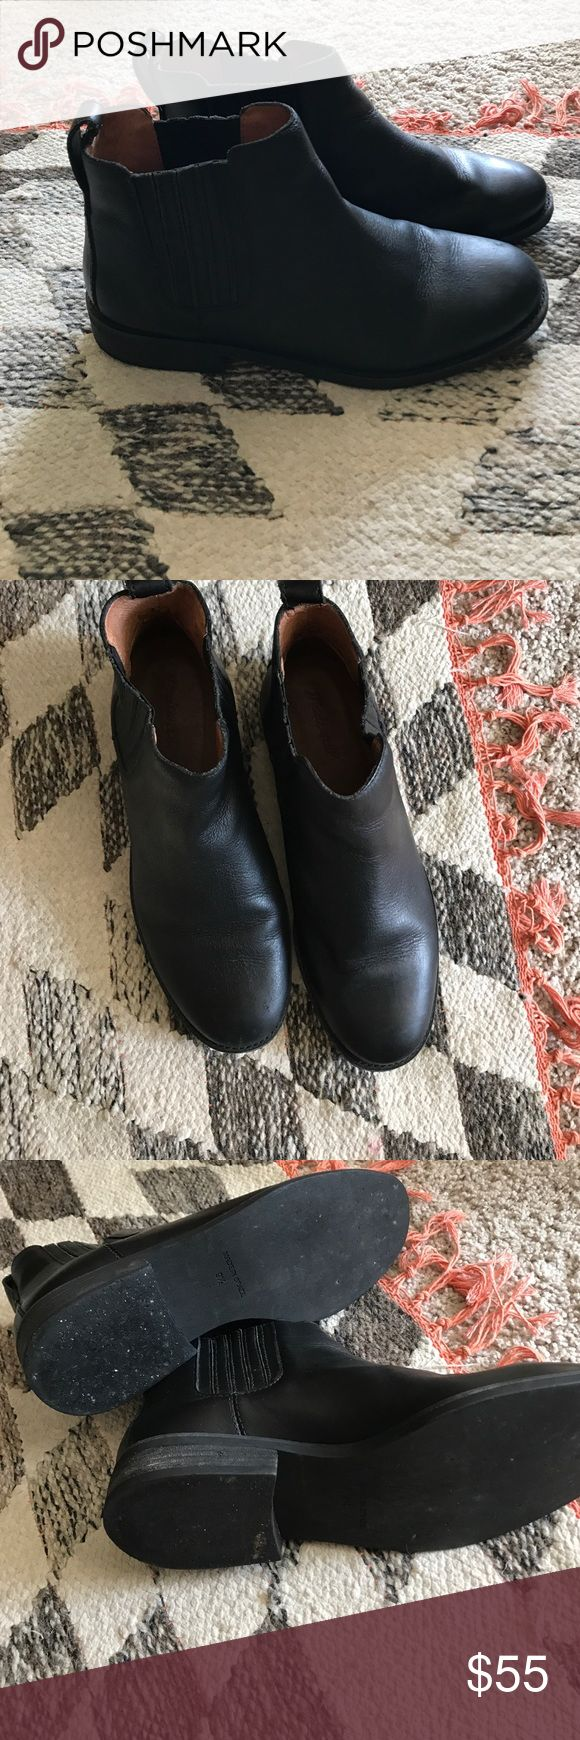 Madewell Chelsea Boots 9.5 NEVER WORN! Current still for sale! Madewell Shoes Ankle Boots & Booties